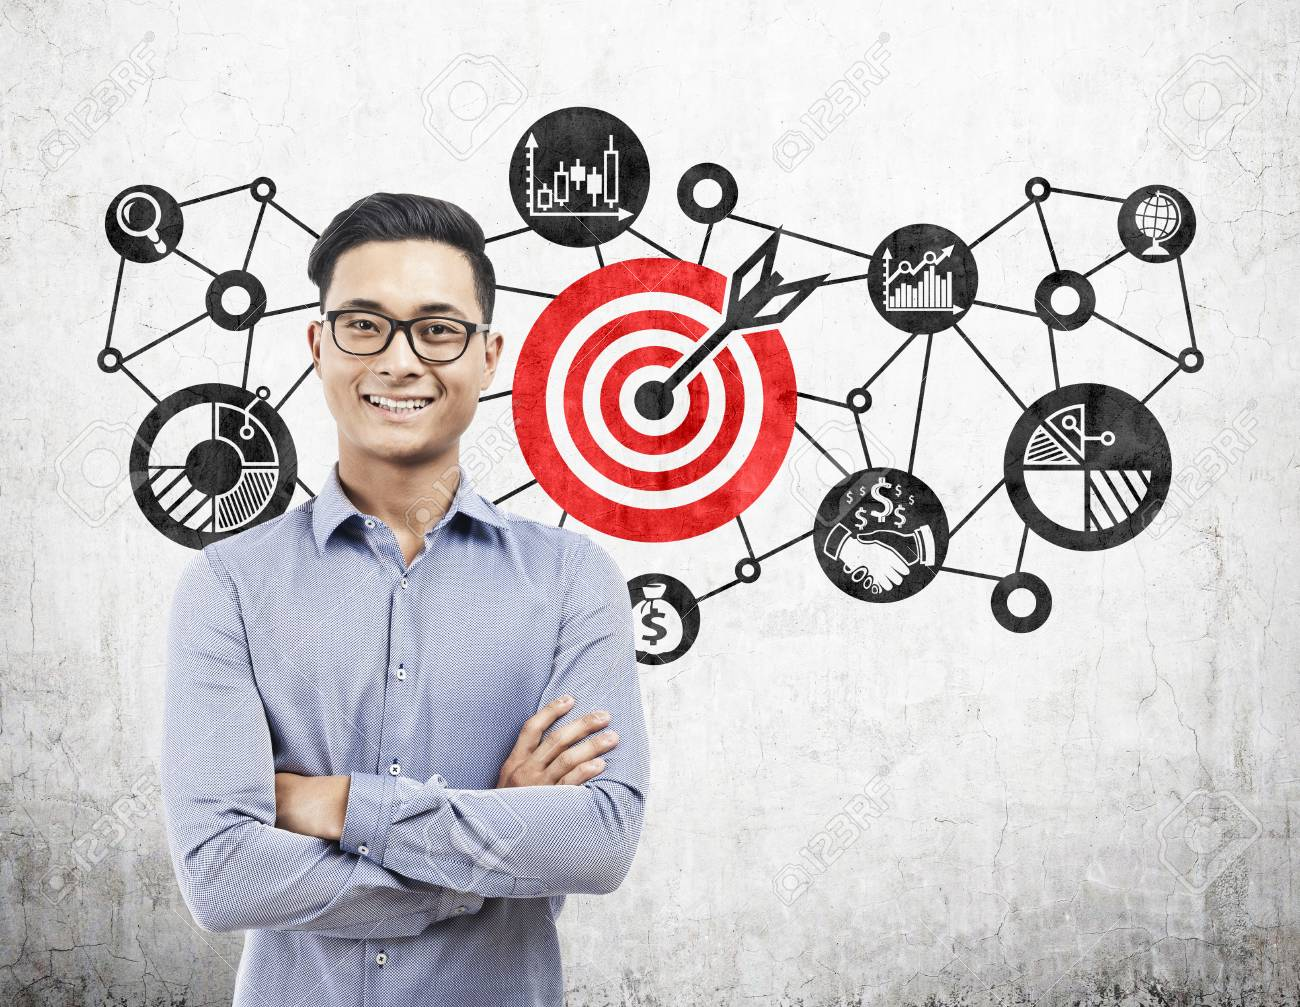 Portrait of an Asian businessman wearing glasses and standing with crossed arms near a target sketch on concrete. - 87538131